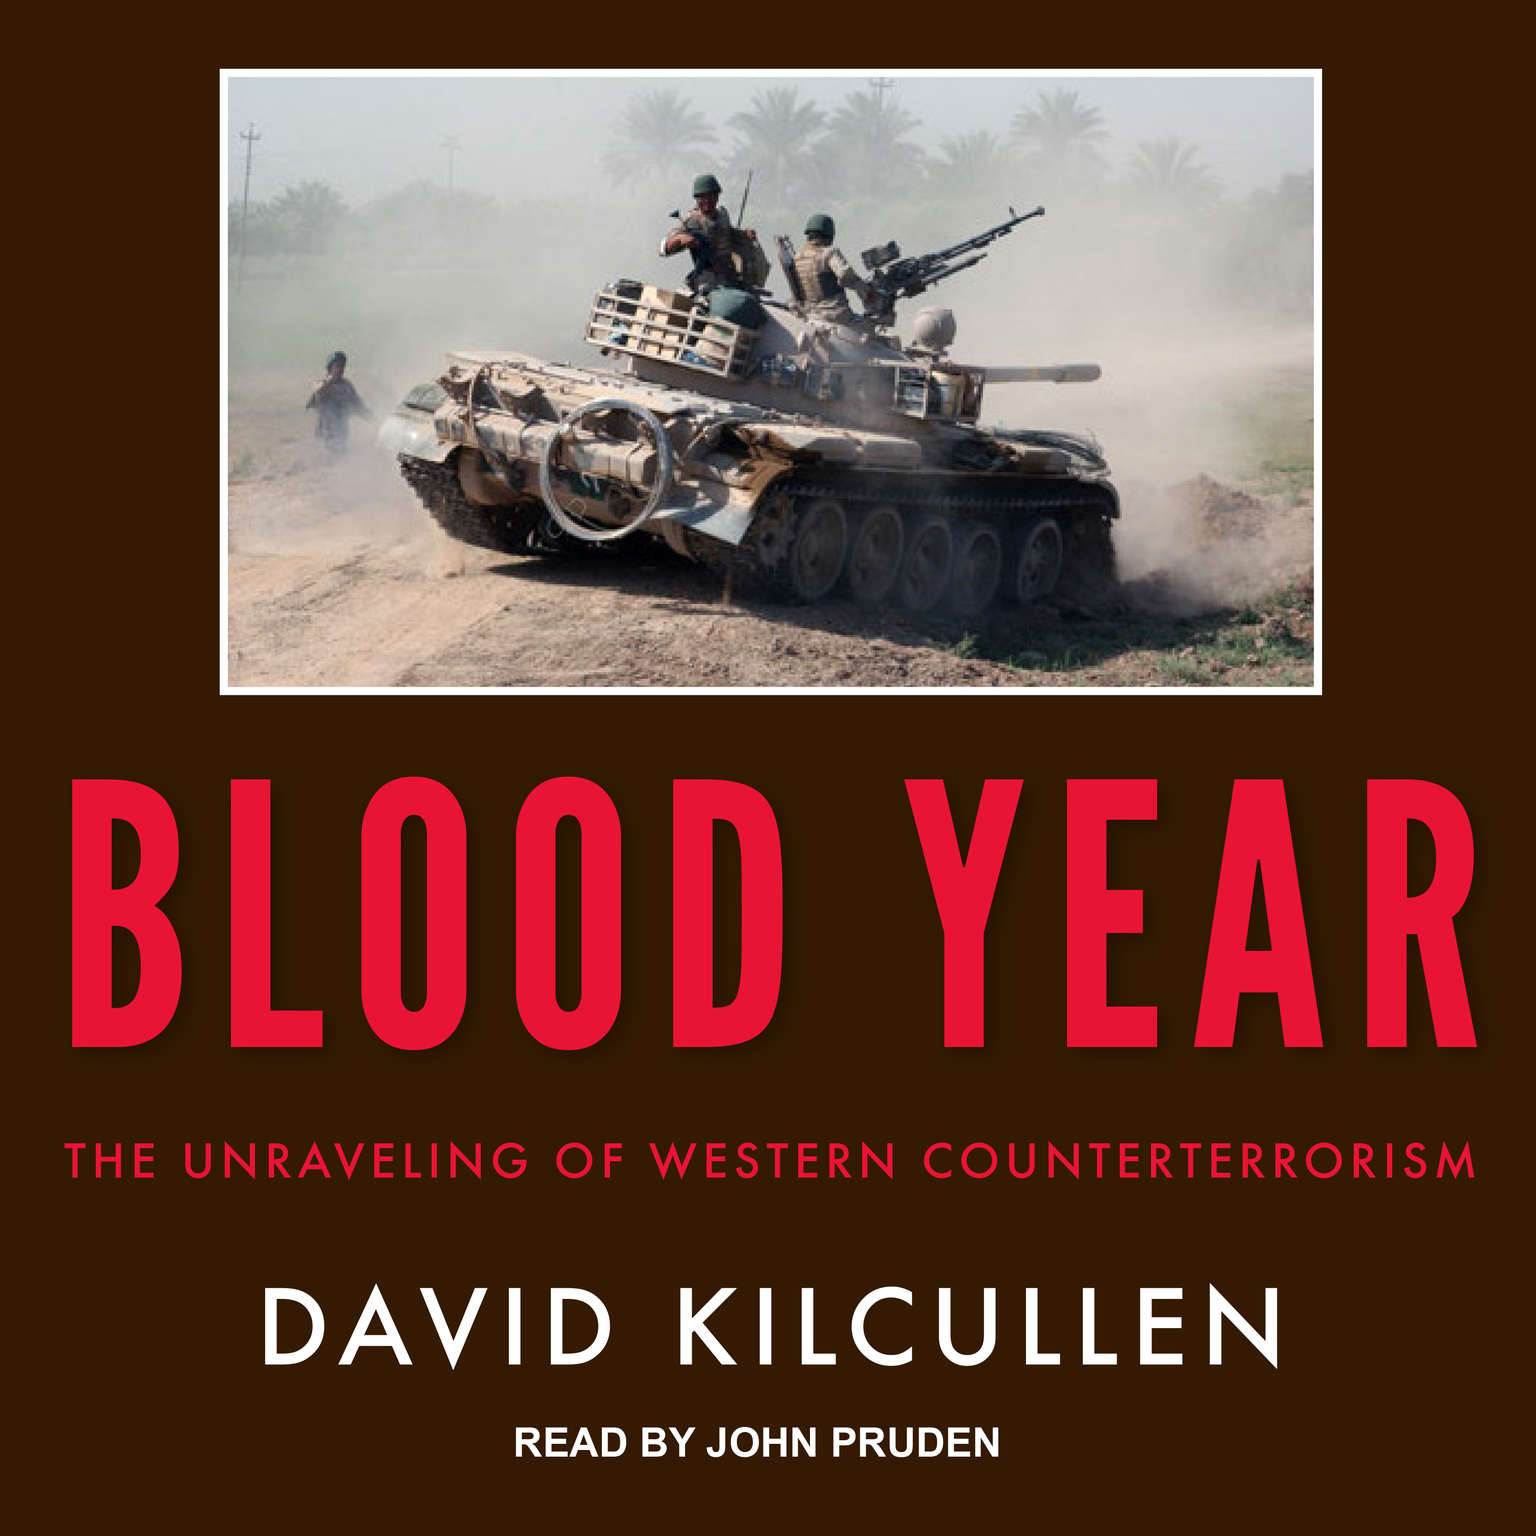 Blood Year: The Unraveling of Western Counterterrorism Audiobook, by David Kilcullen